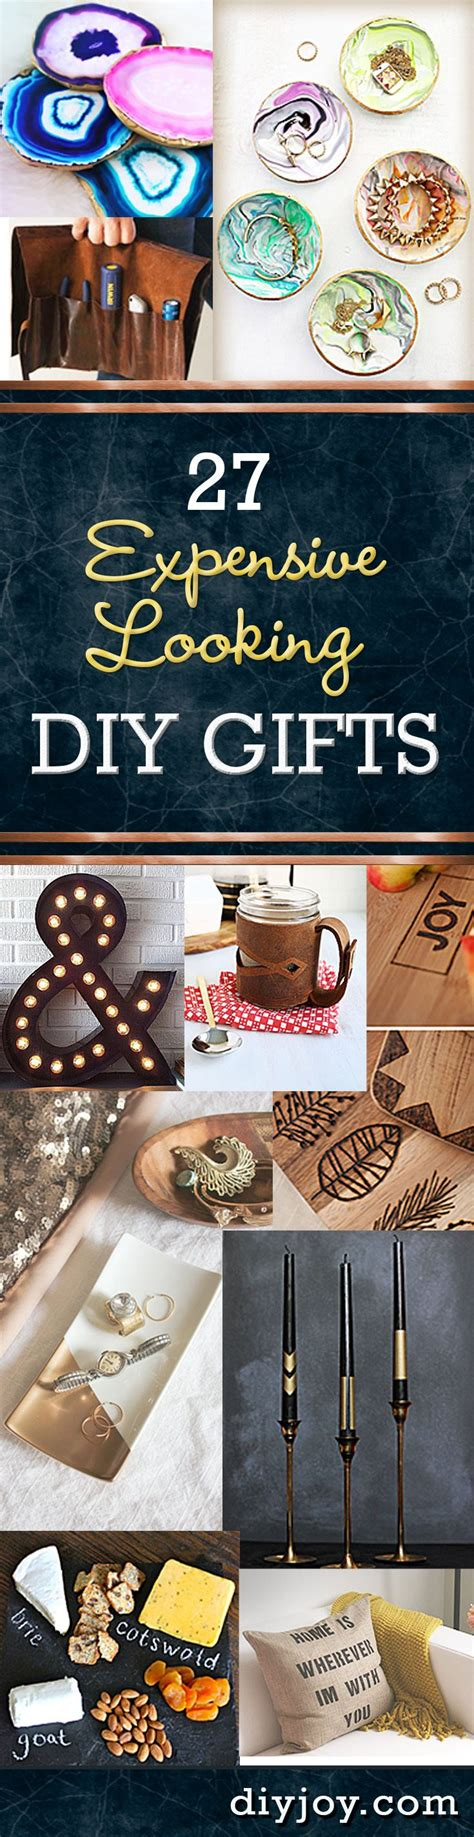 Awesome Handmade Gifts - inexpensive diy gifts and creative crafts and projects